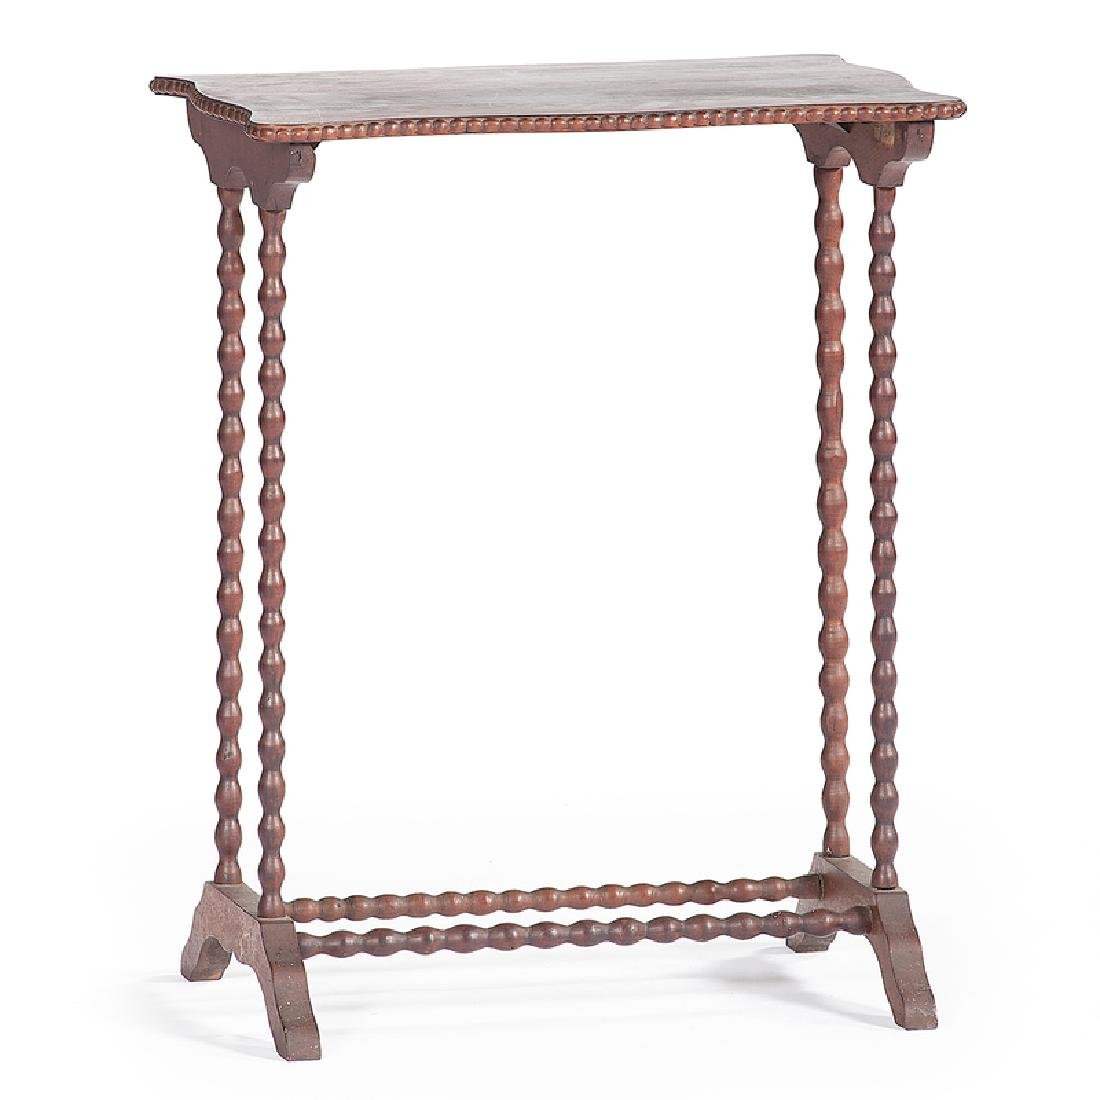 Gothic Revival Spool Turned Work Table